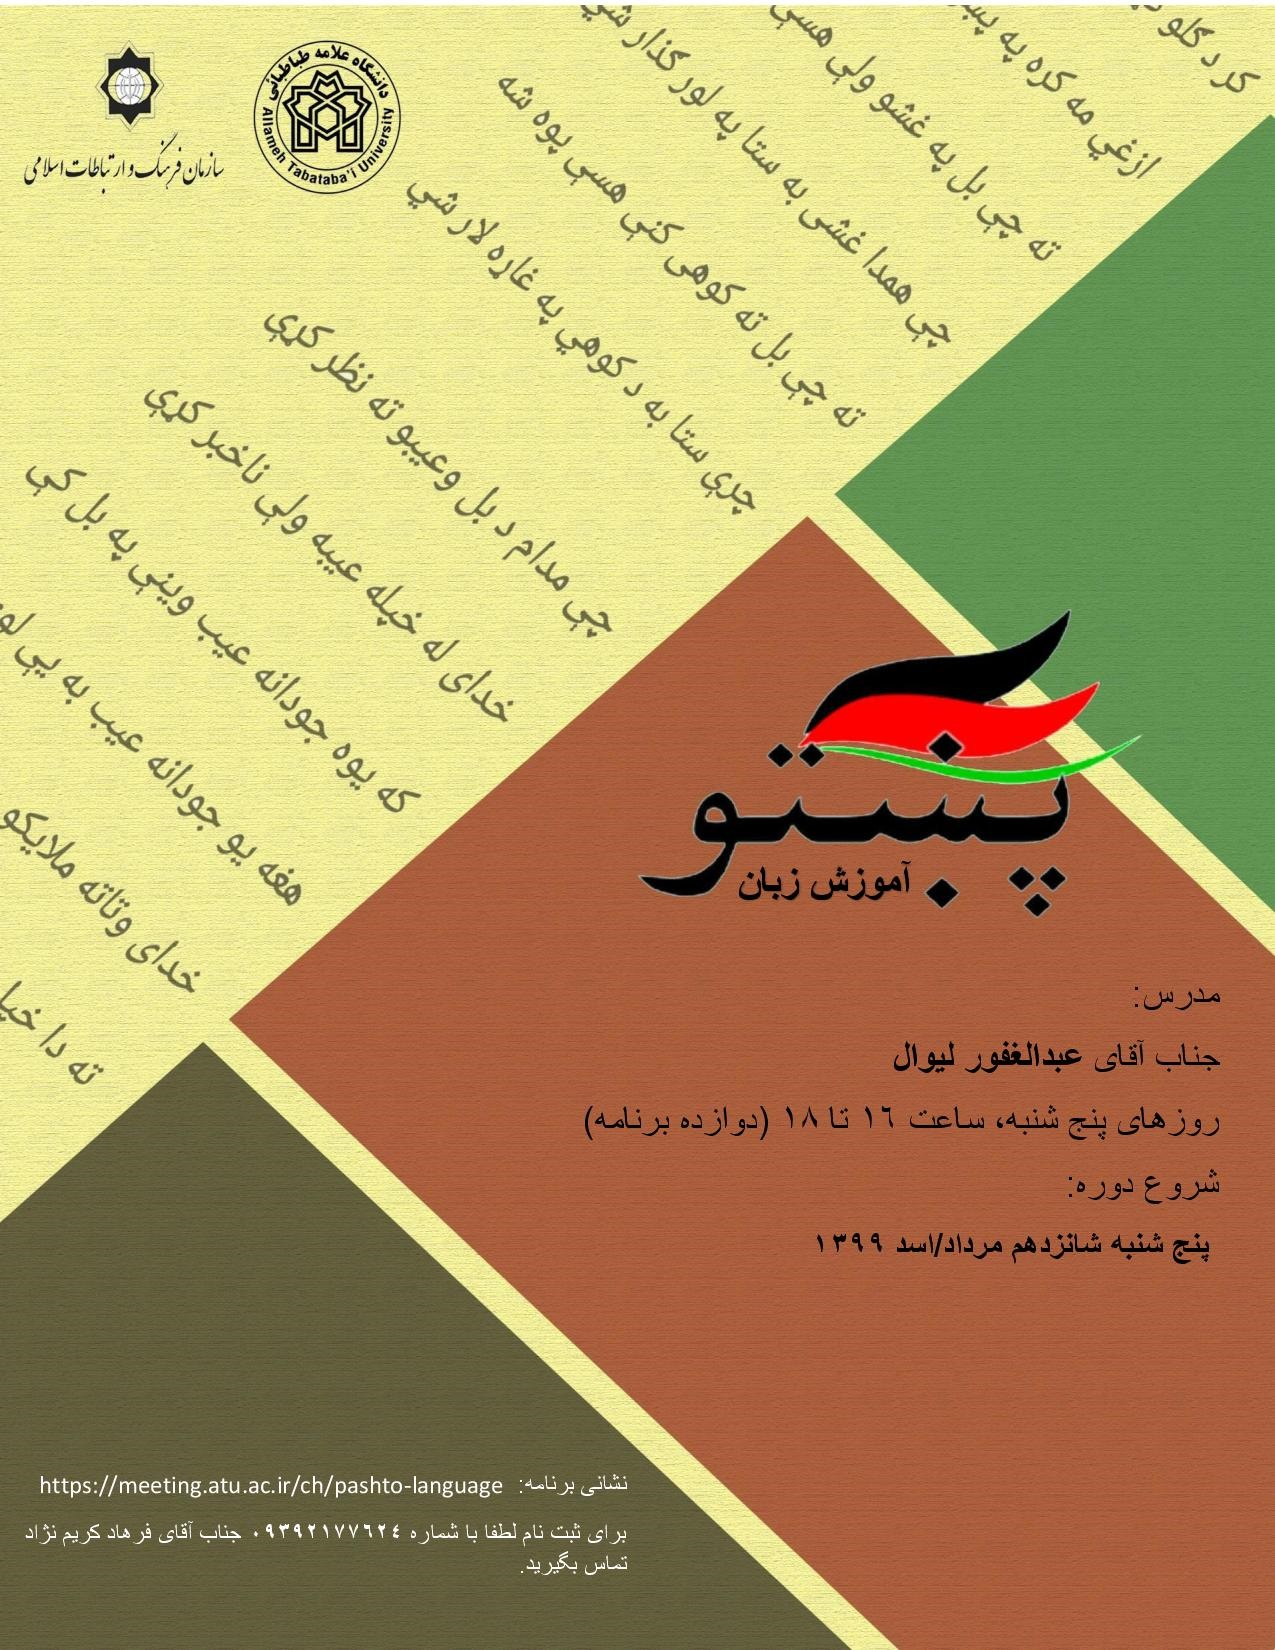 Pashto Language Course taught by Abdul Ghafoor Liwal